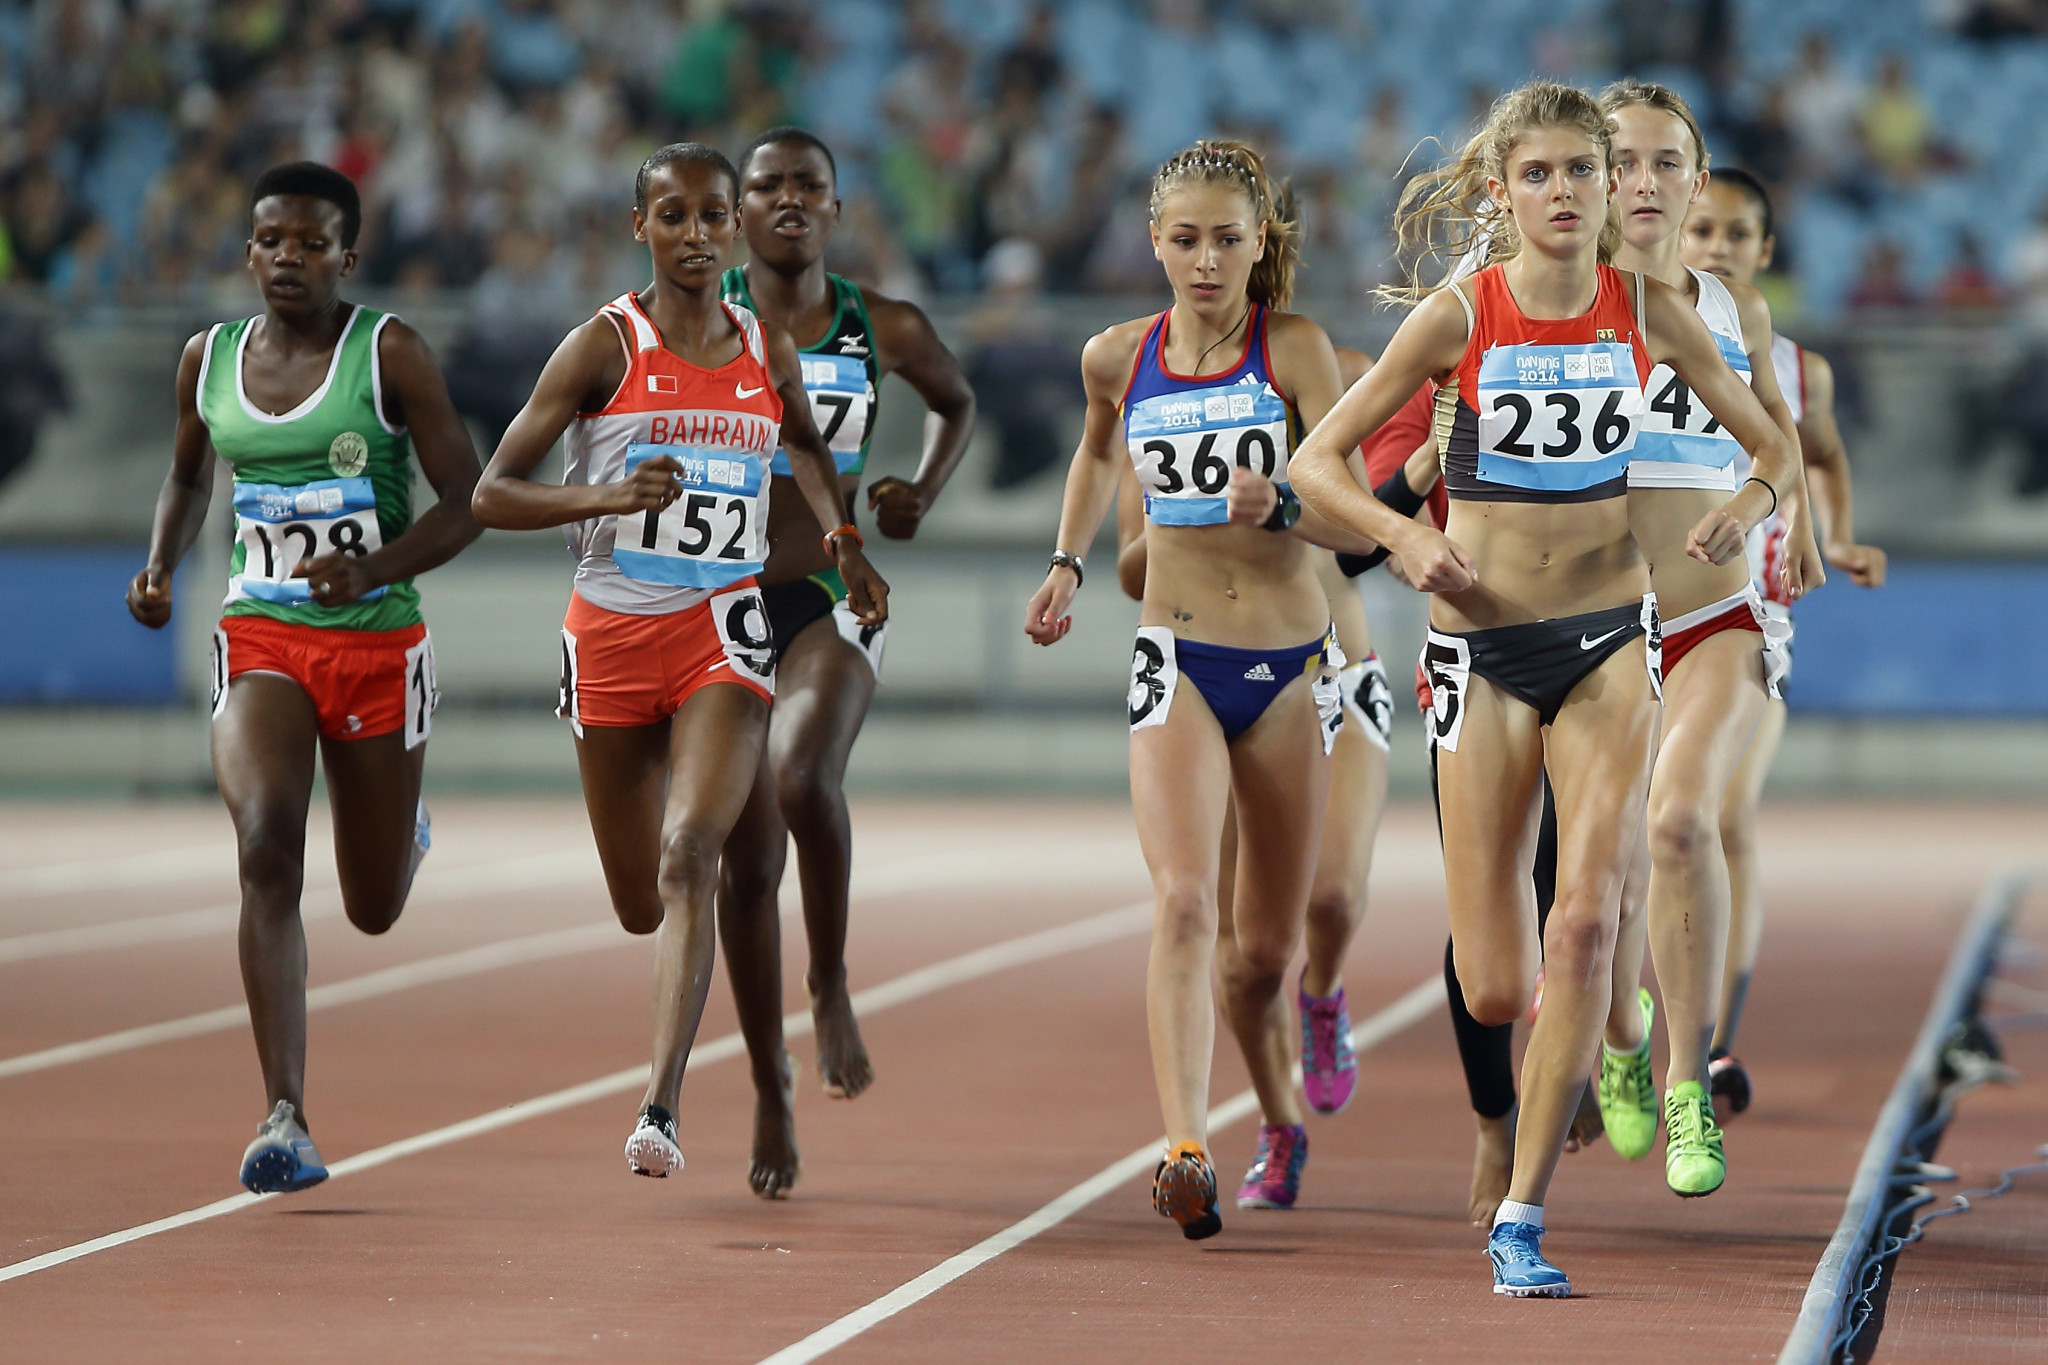 After completing heats in their traditional disciplines at Buenos Aires 2018, athletes competing in the long distance events will be made to complete a 4km cross country race ©Getty Images